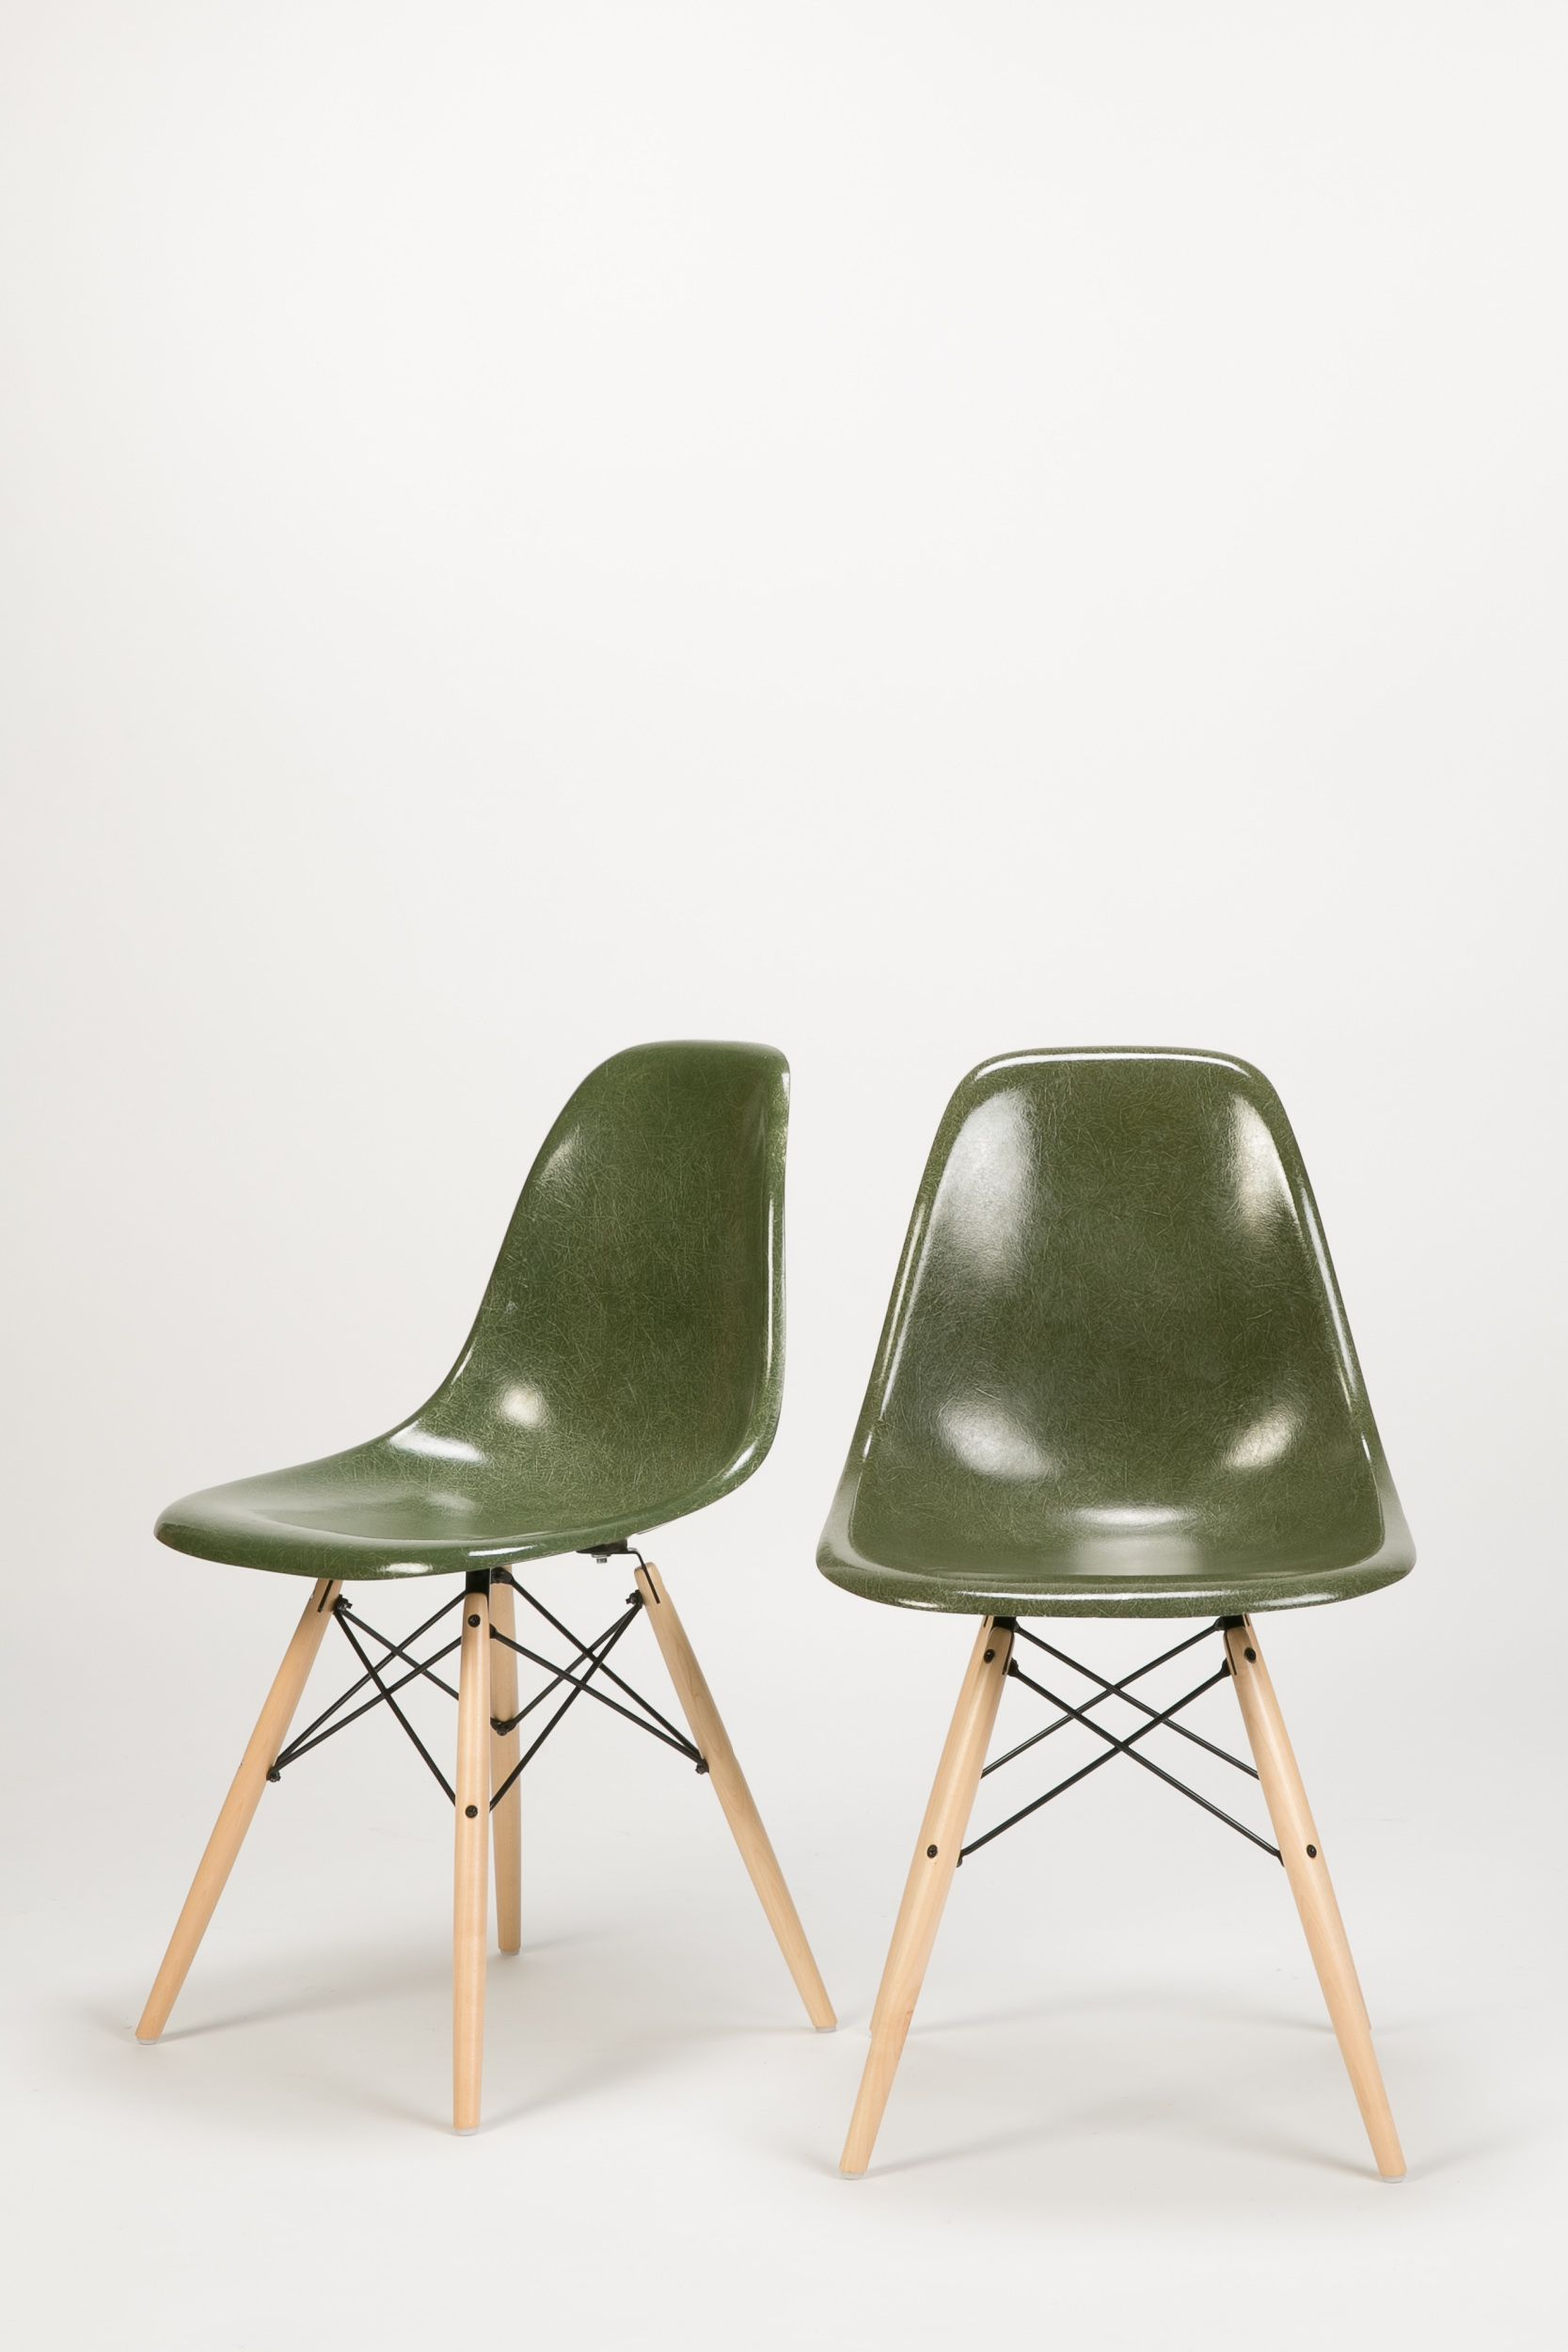 Olive 8 Eames Herman Miller Birch Dowel Charles and Ray Eames Vitra ...